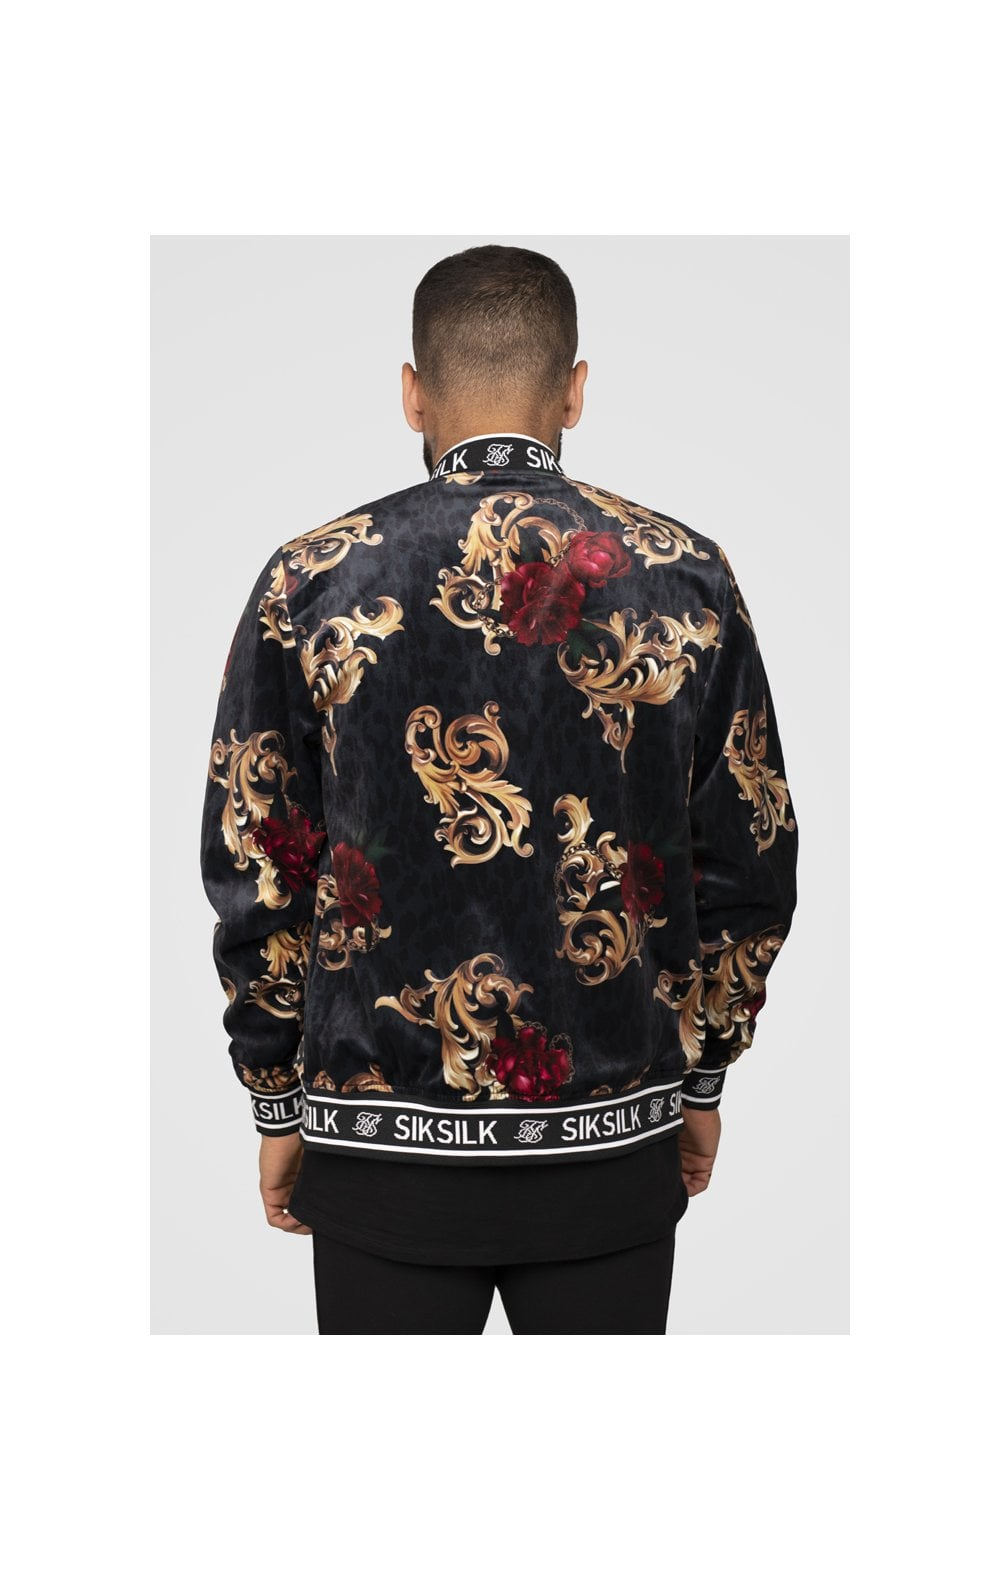 SikSilk x Dani Alves Velour Bomber Jacket - Floral Animal (4)